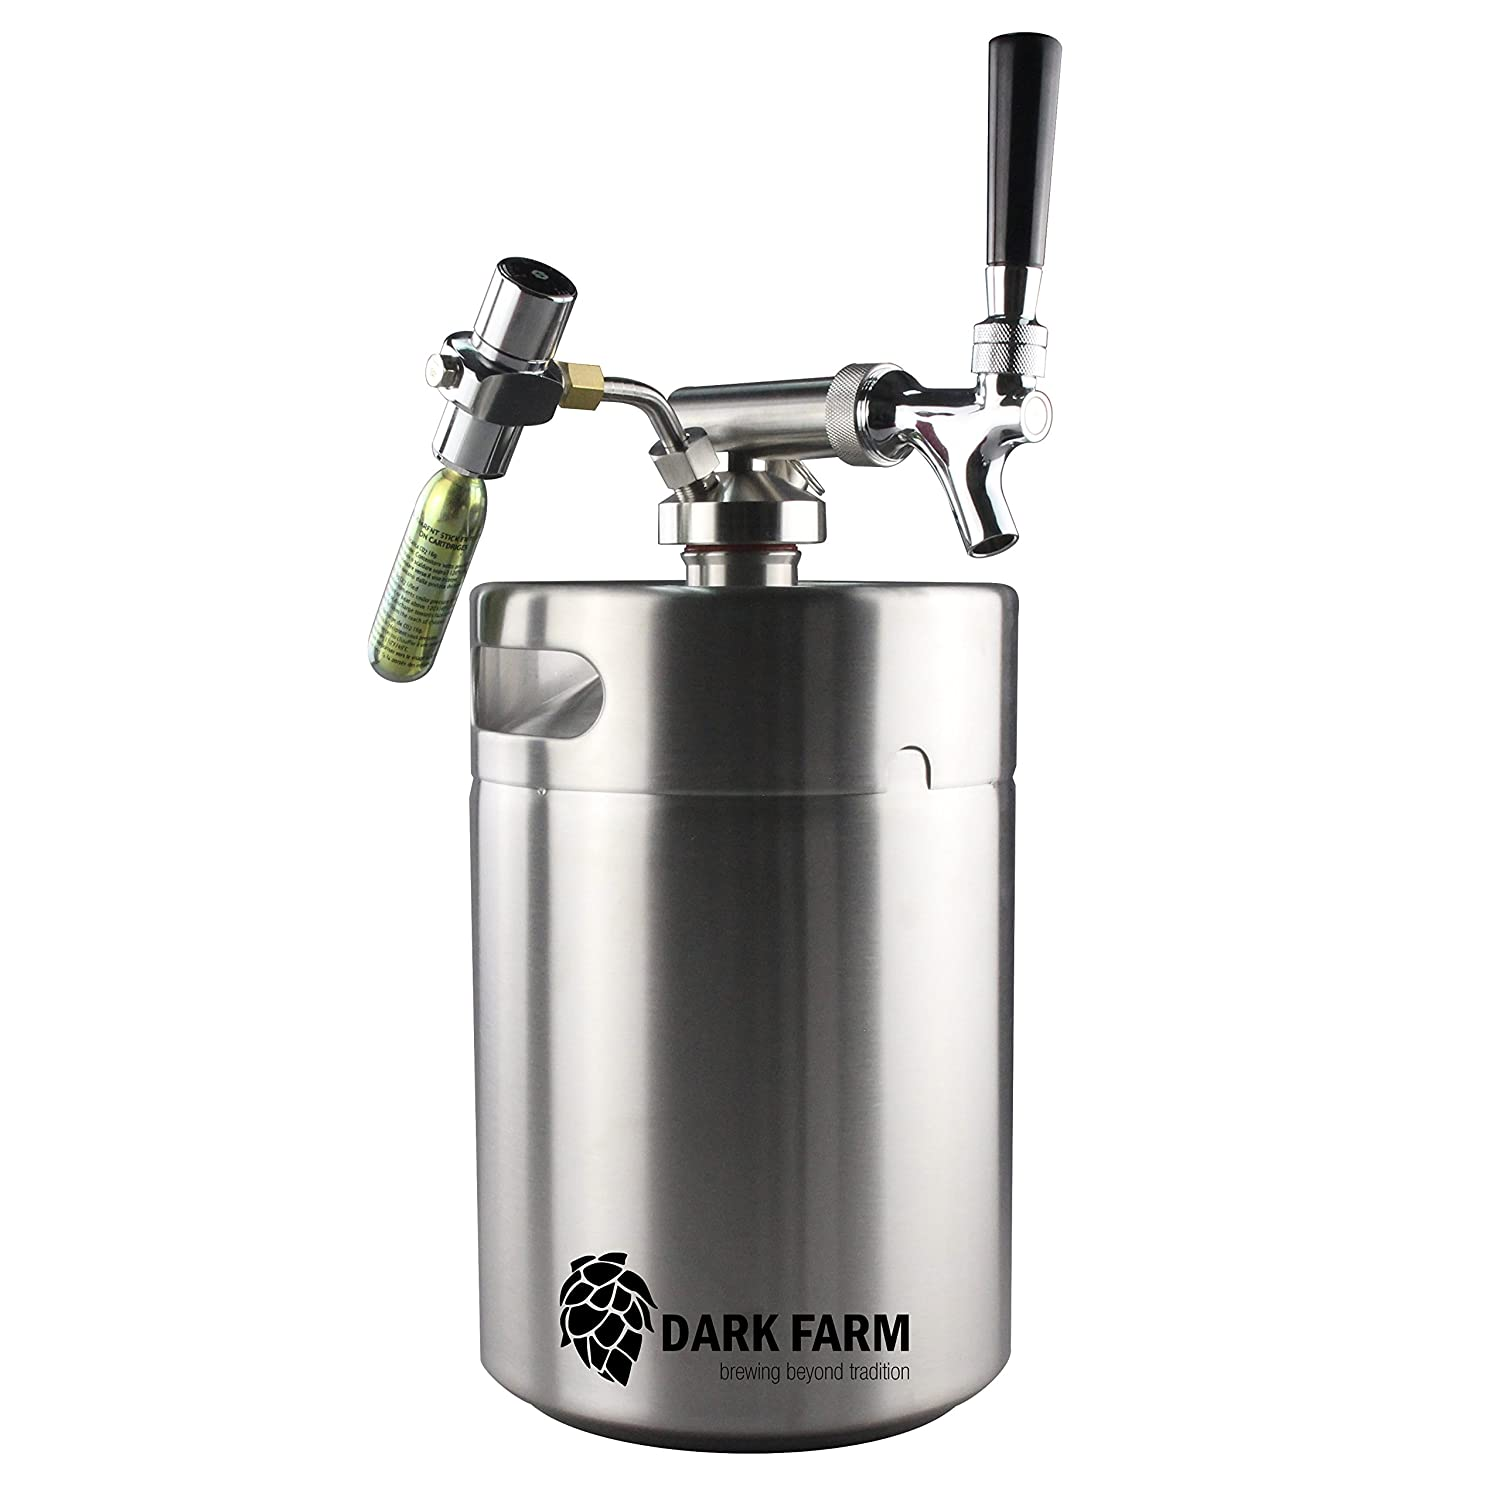 Portable Home Brew Draft System 5L Mini Keg/Growler with CO2 Dispenser Dark Farm